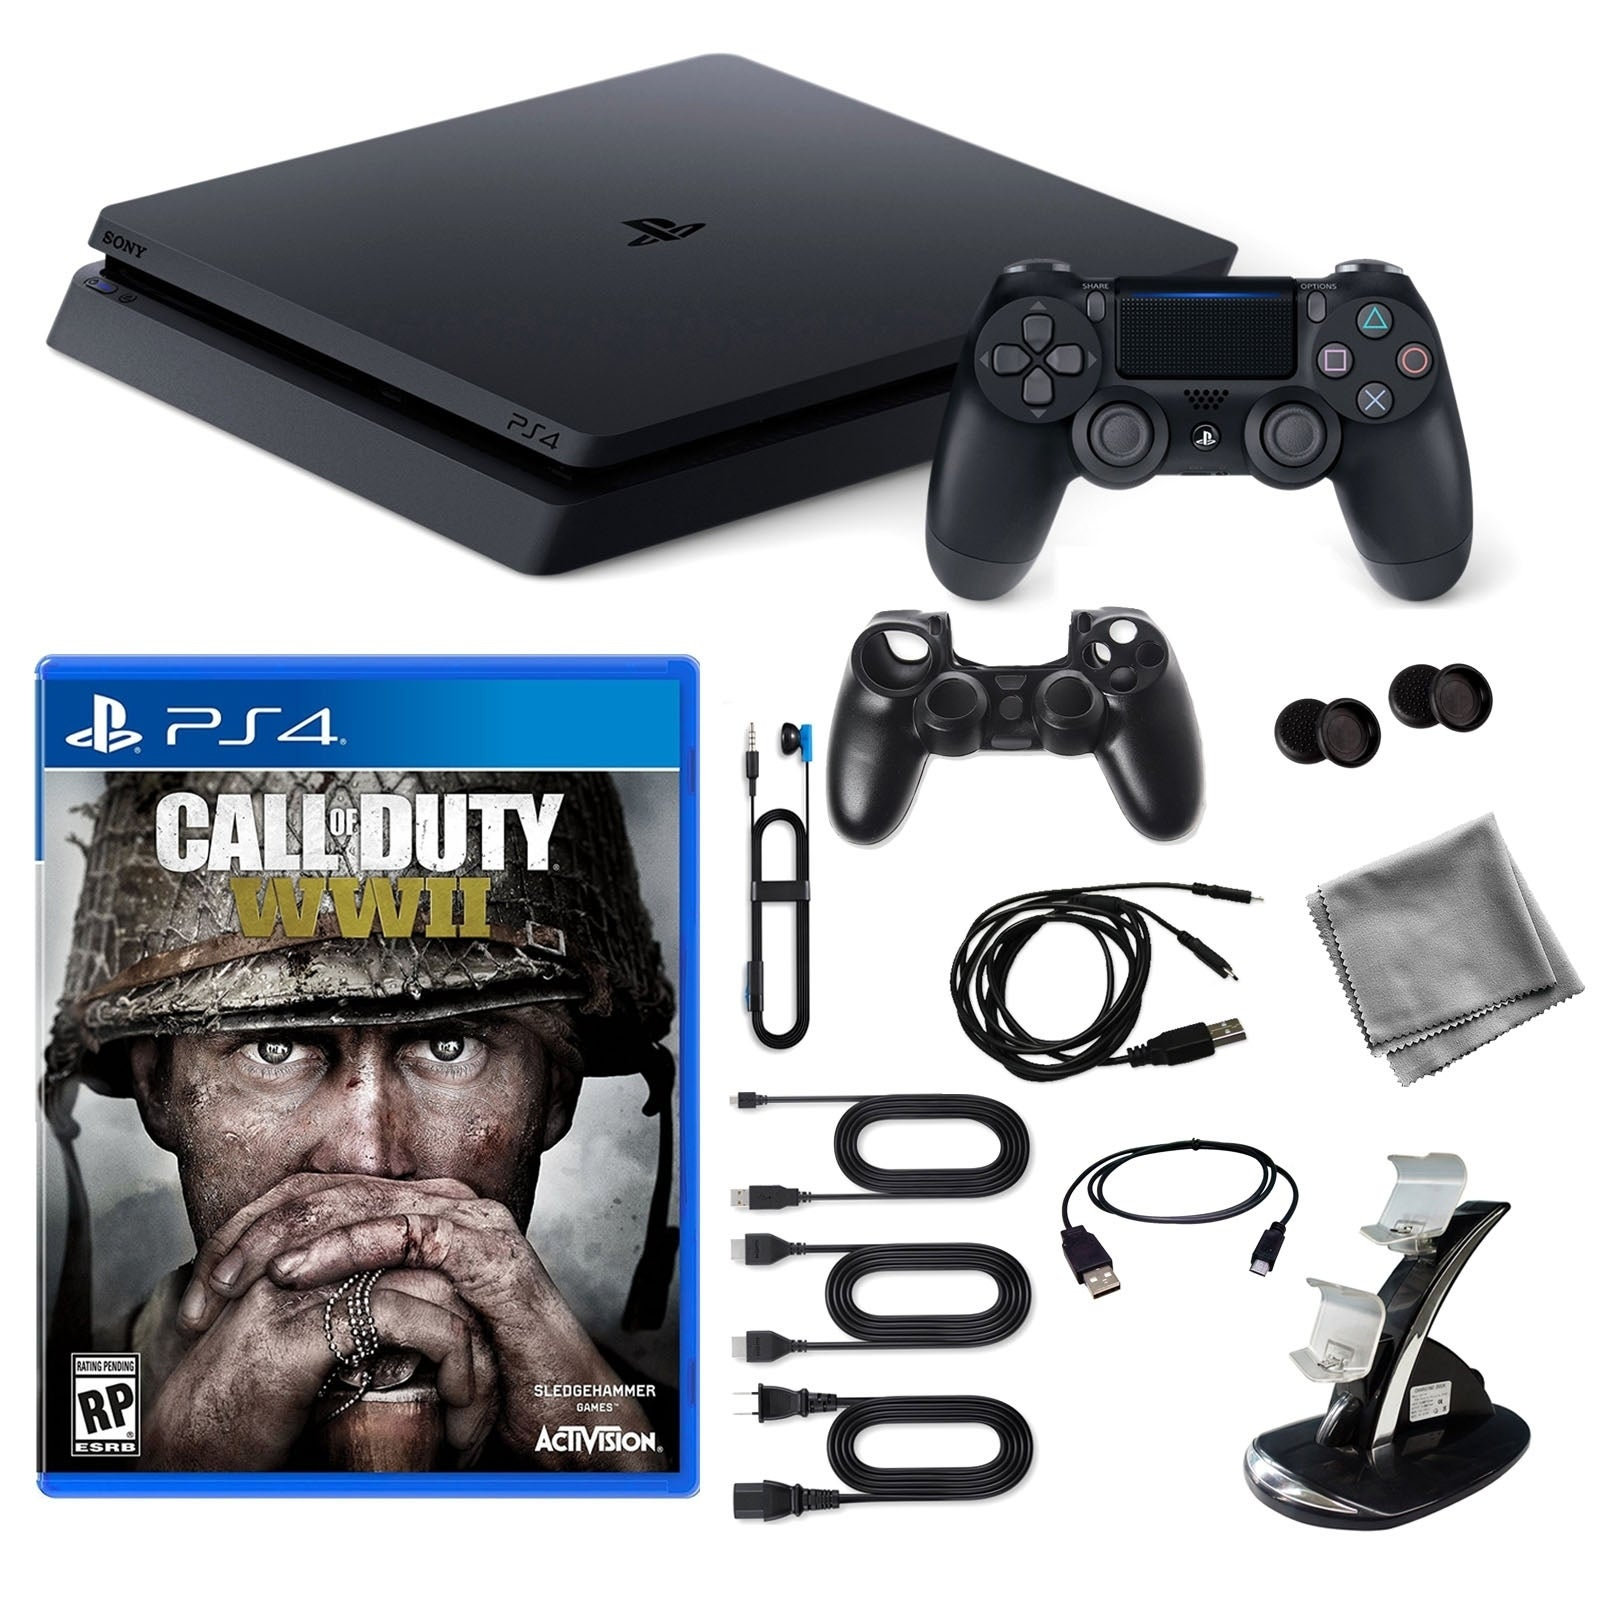 Playstation 4 1TB Core Console with COD Wwii Game and 9 i...